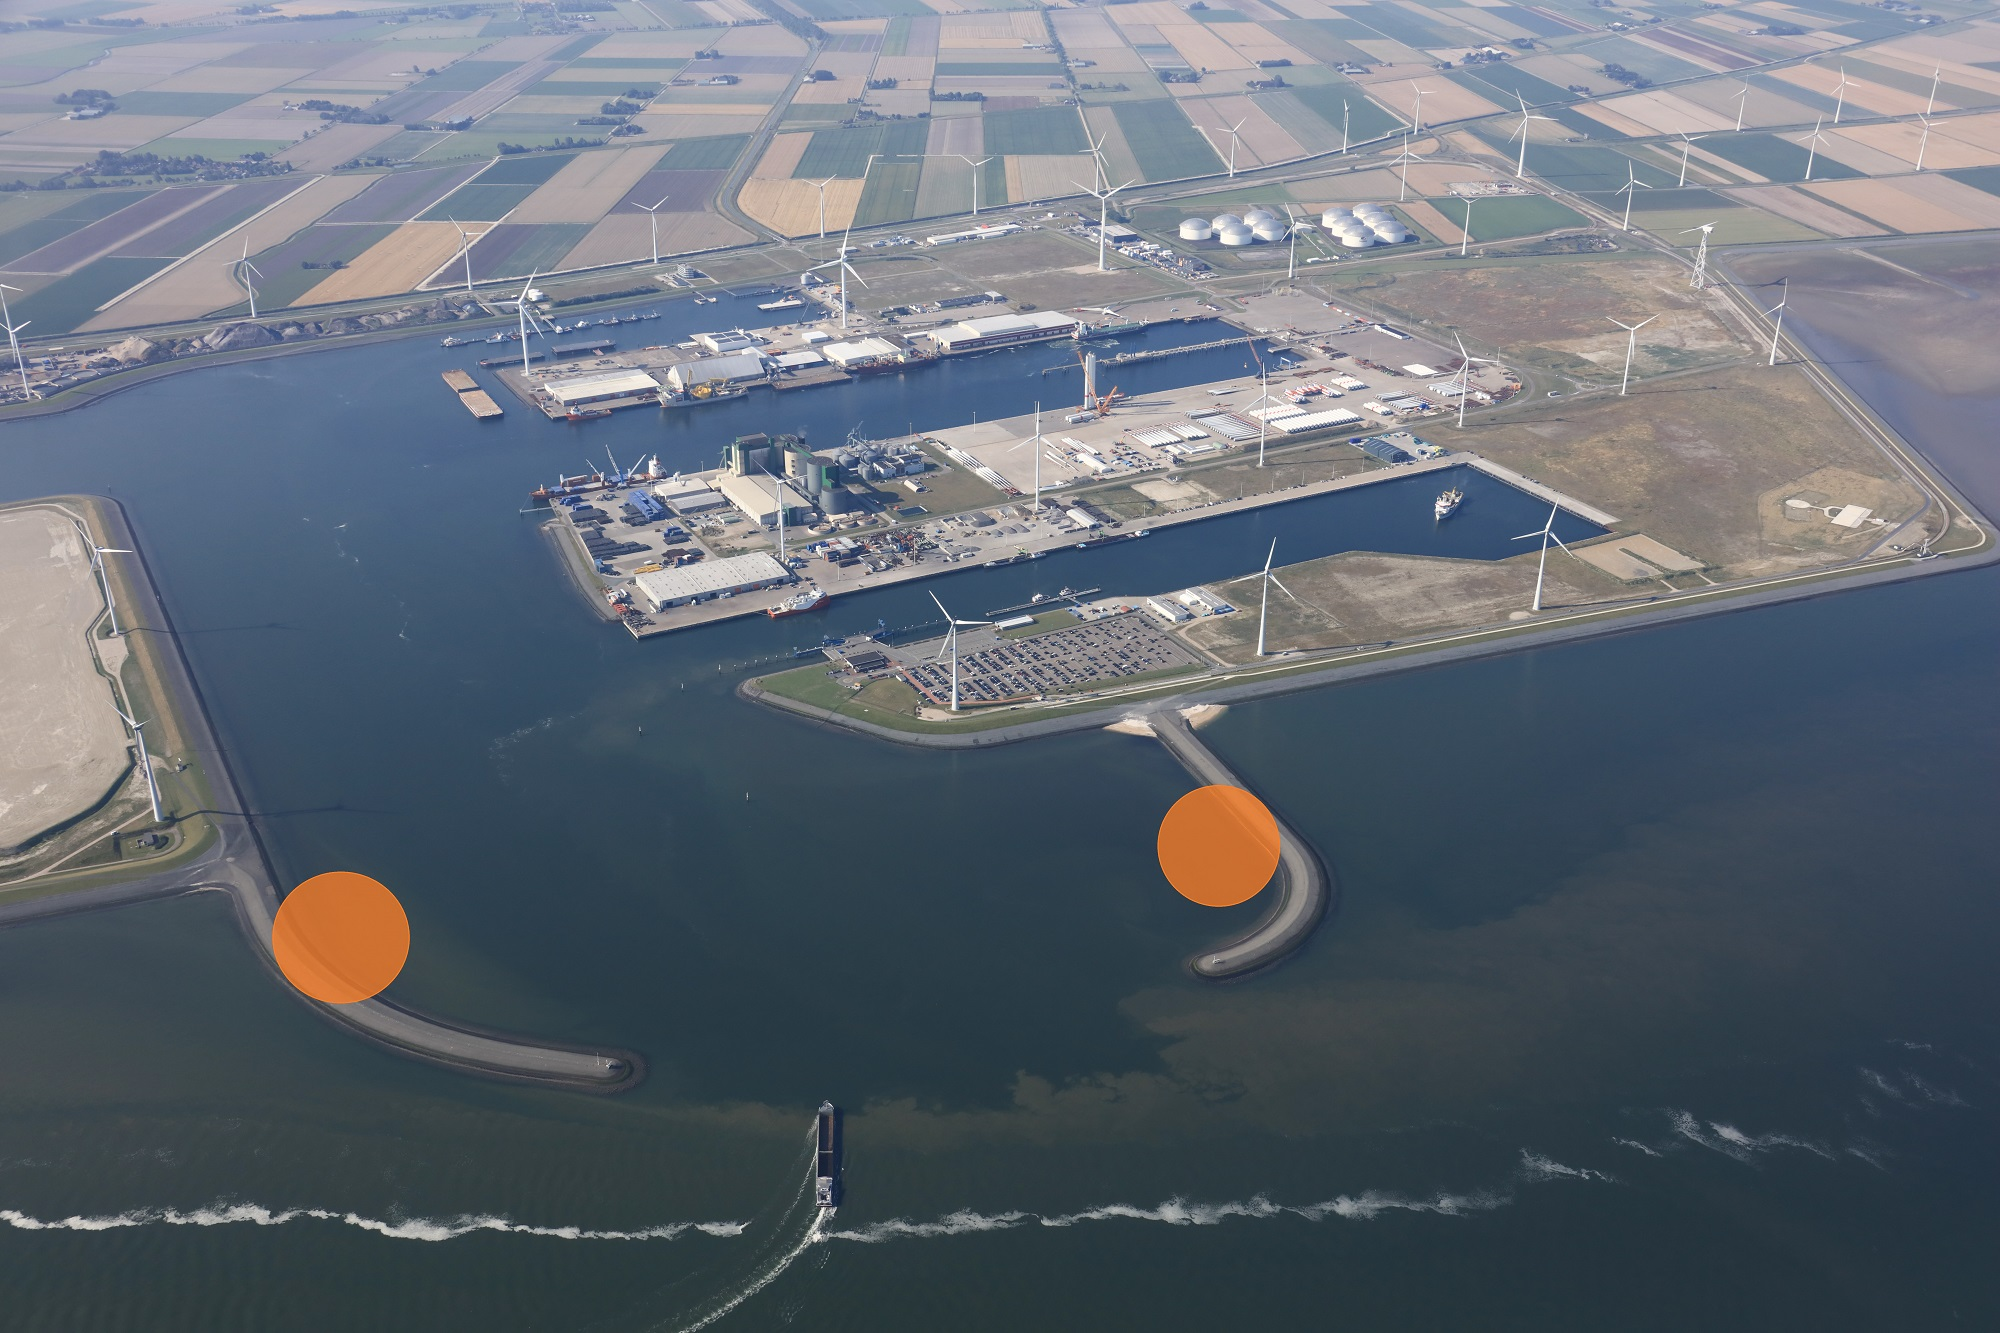 Bouw Windpark Strekdammen kan van start